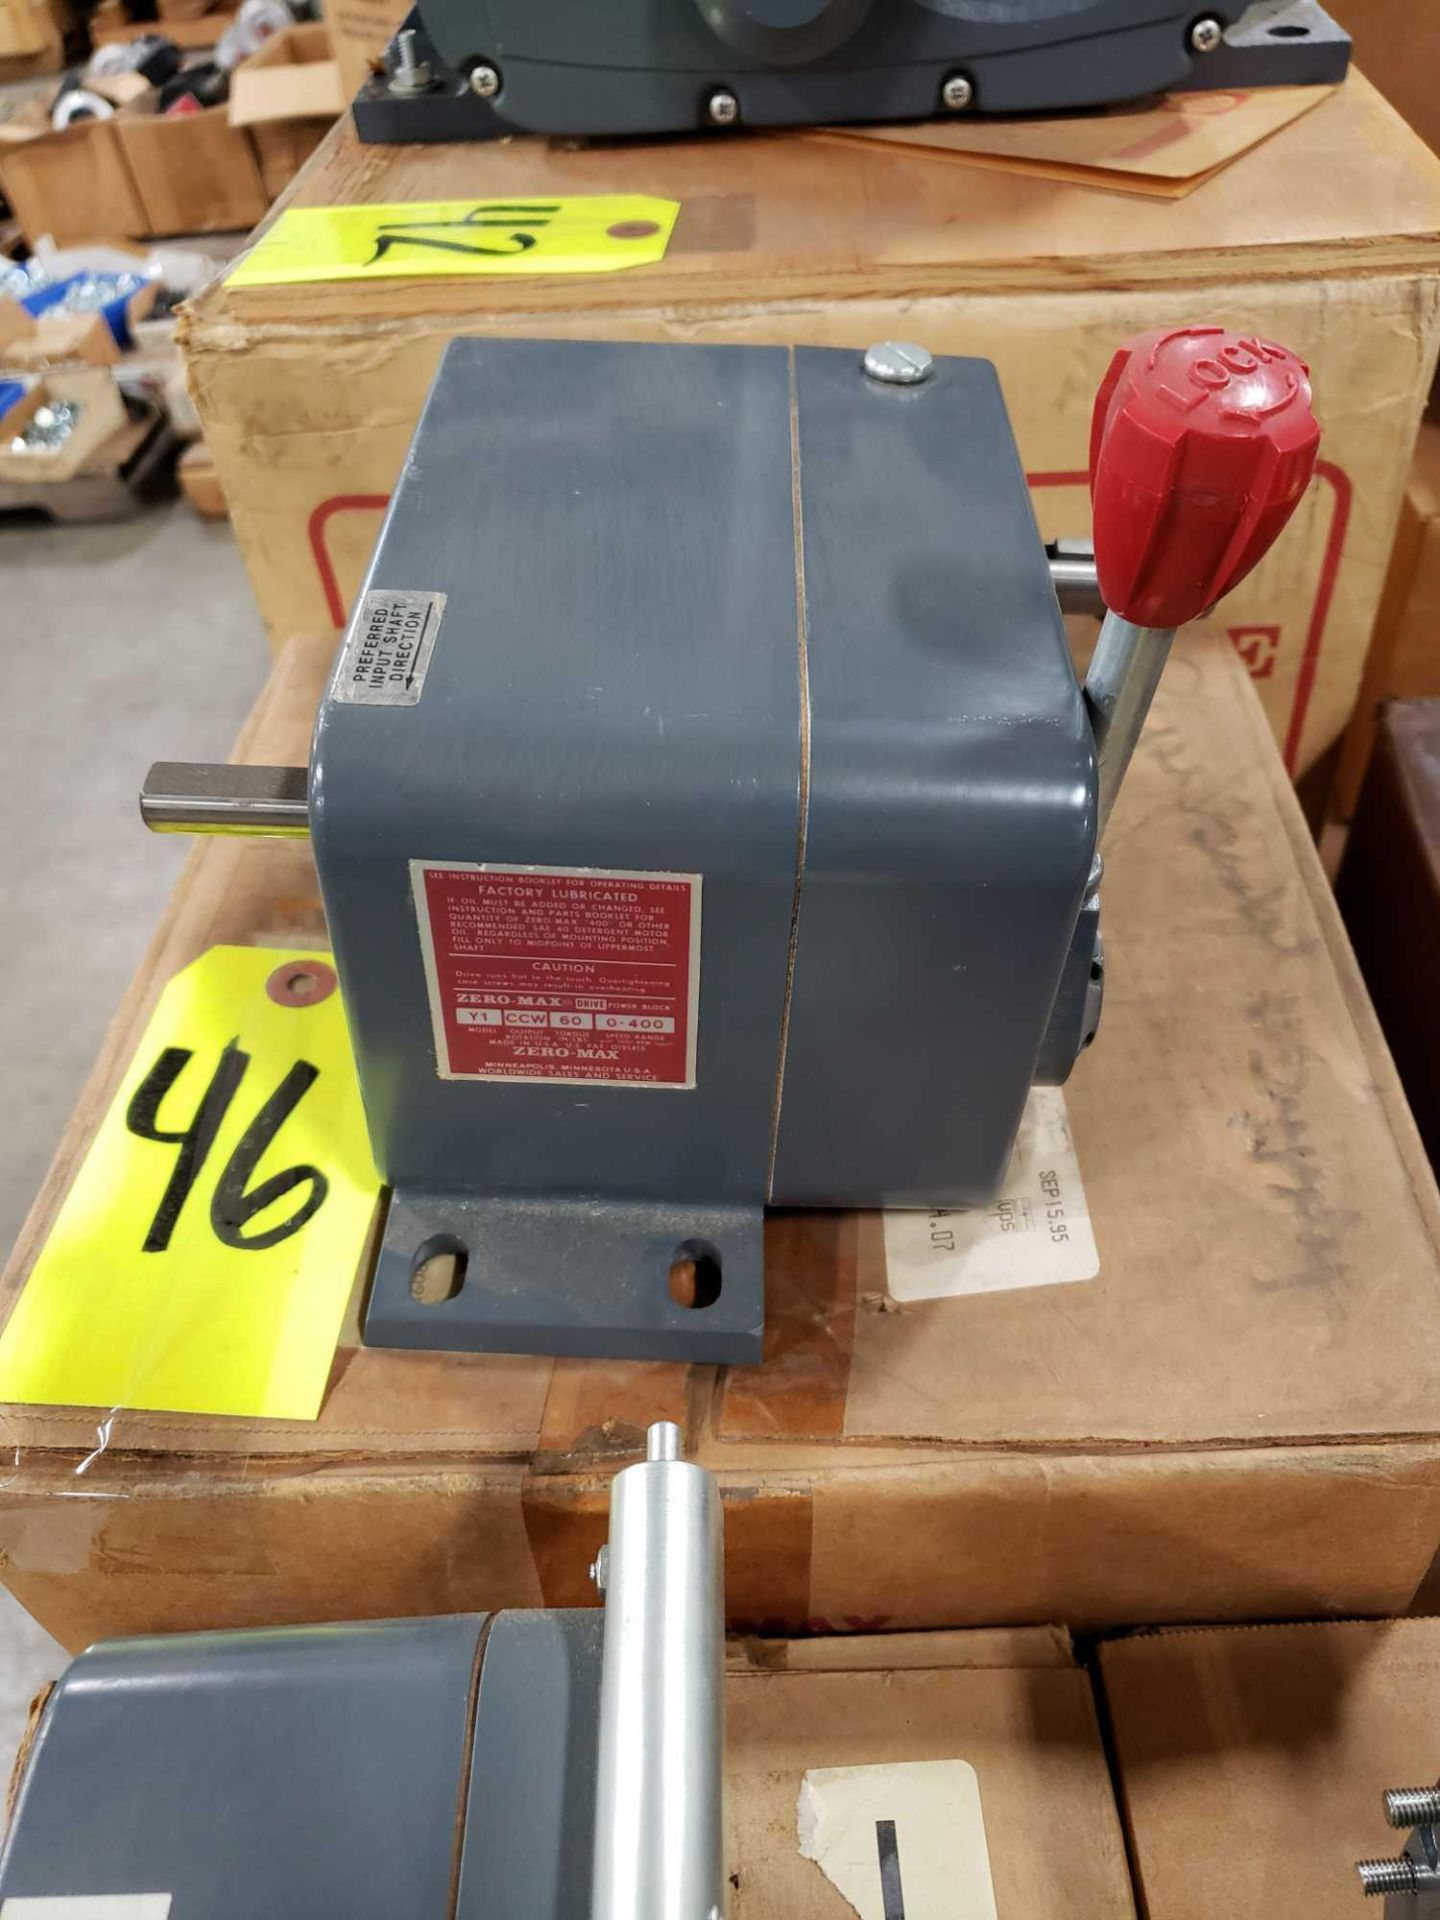 Lot 46 - Zero-max drive power block model Y1, CCW output rotation, 60lb torque, 0-400 speed range. New.